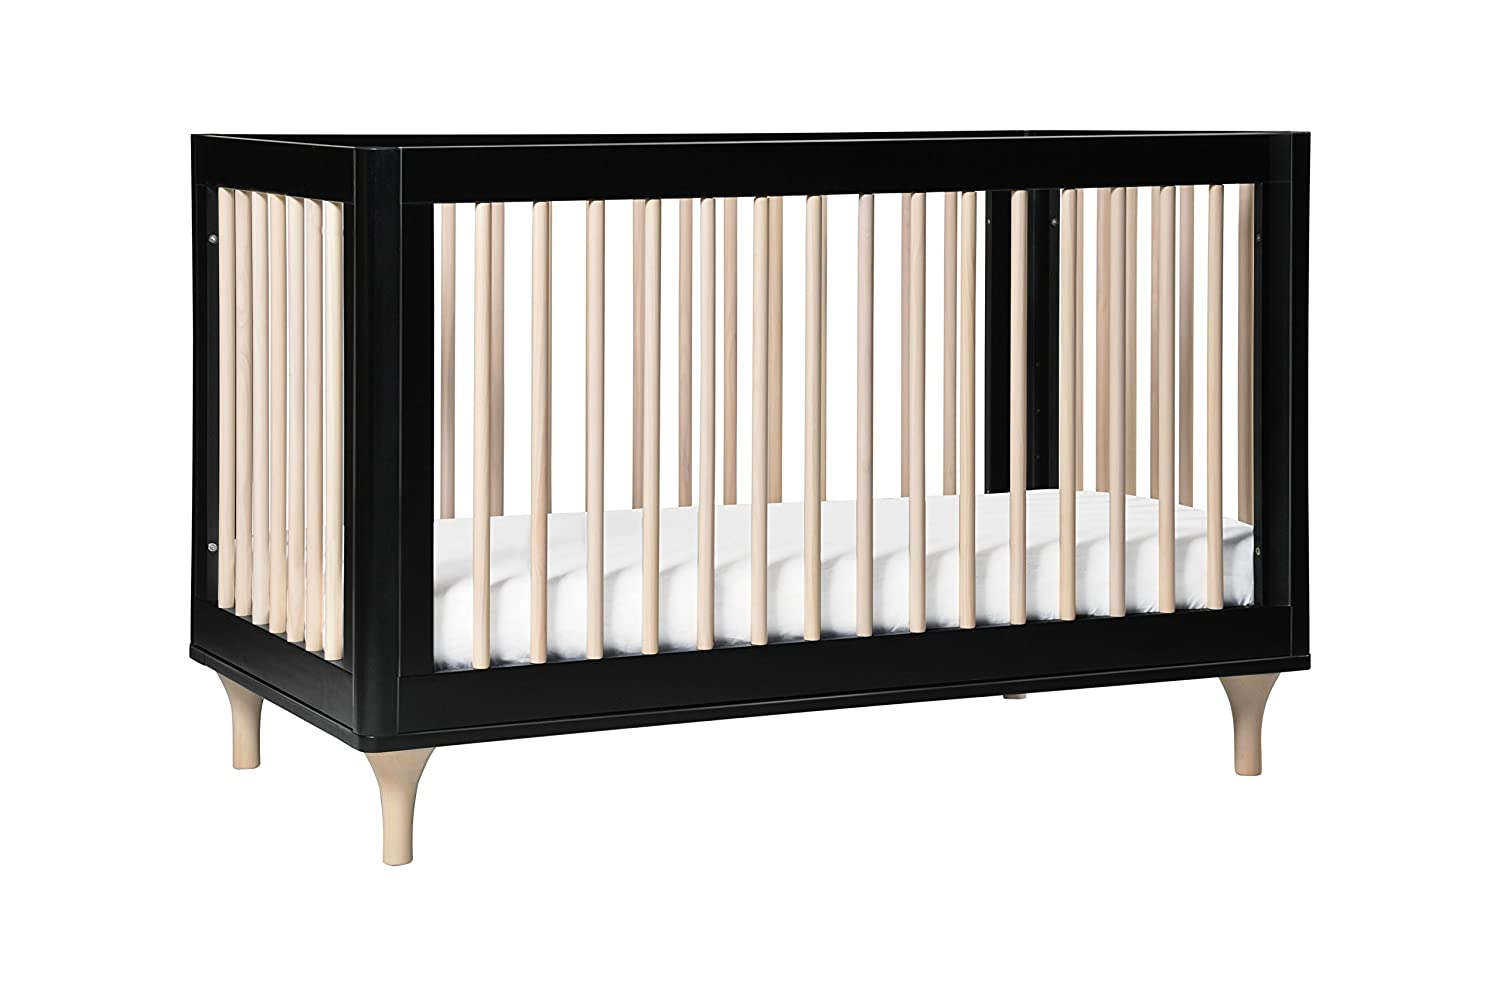 Babyletto Lolly 3 In 1 Convertible Crib With Toddler Bed Conversion Kit, Black / Washed Natural by Babyletto